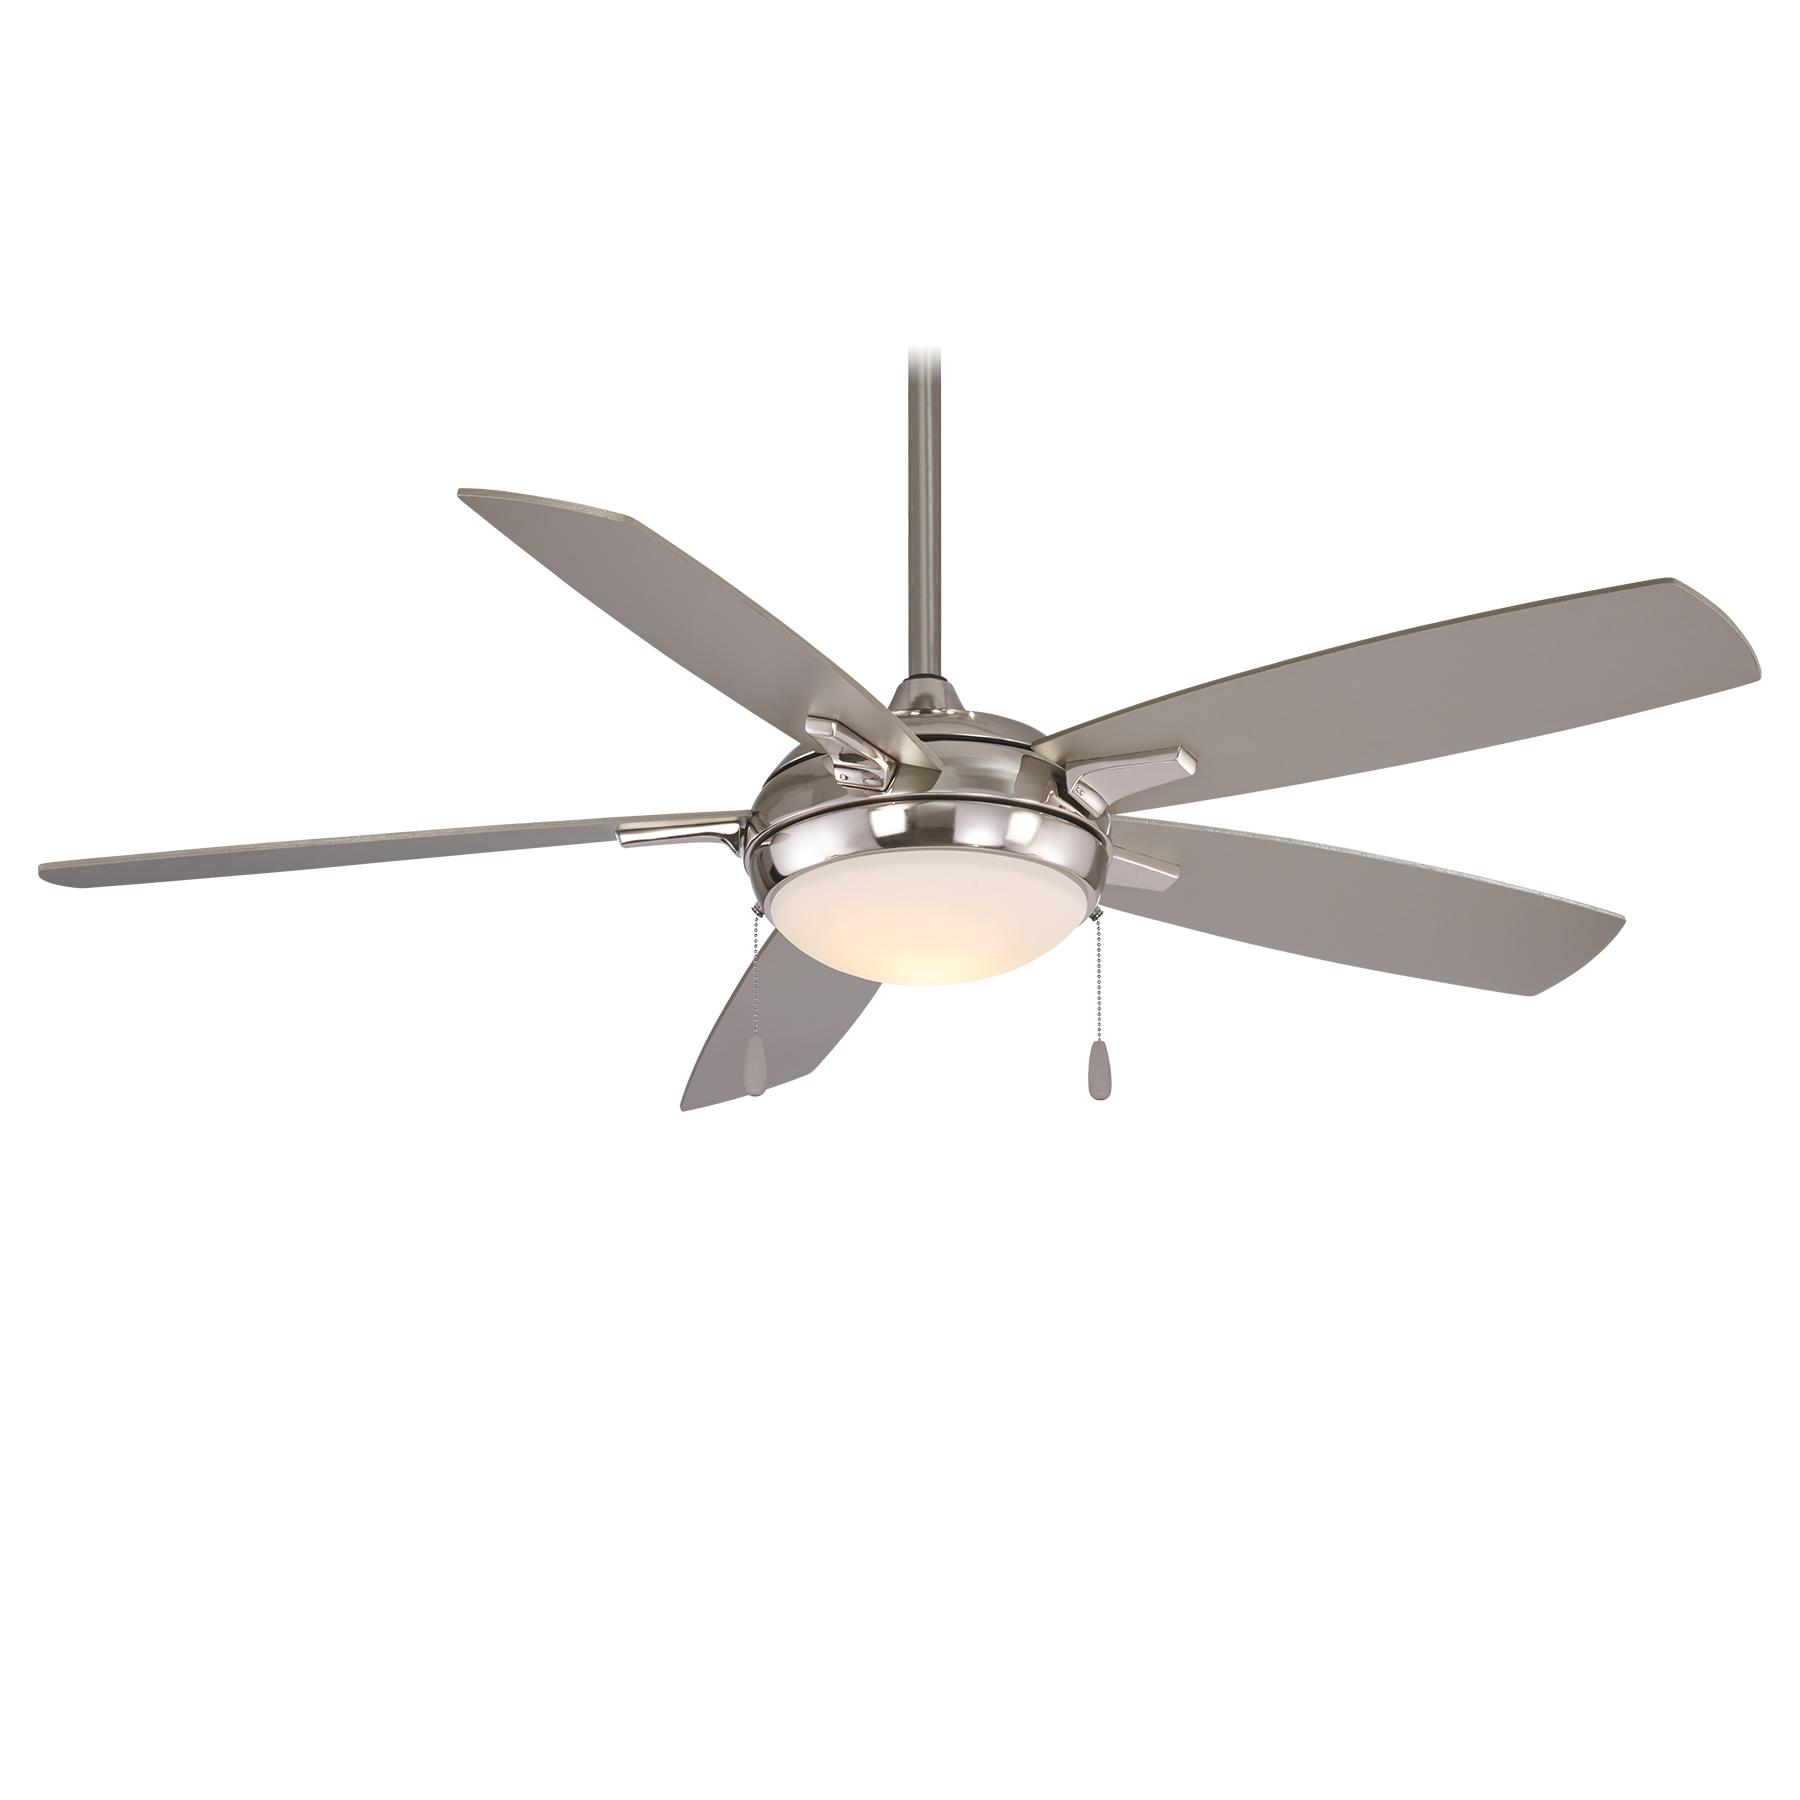 orb raptor by with ab index aire fan light minka ceiling